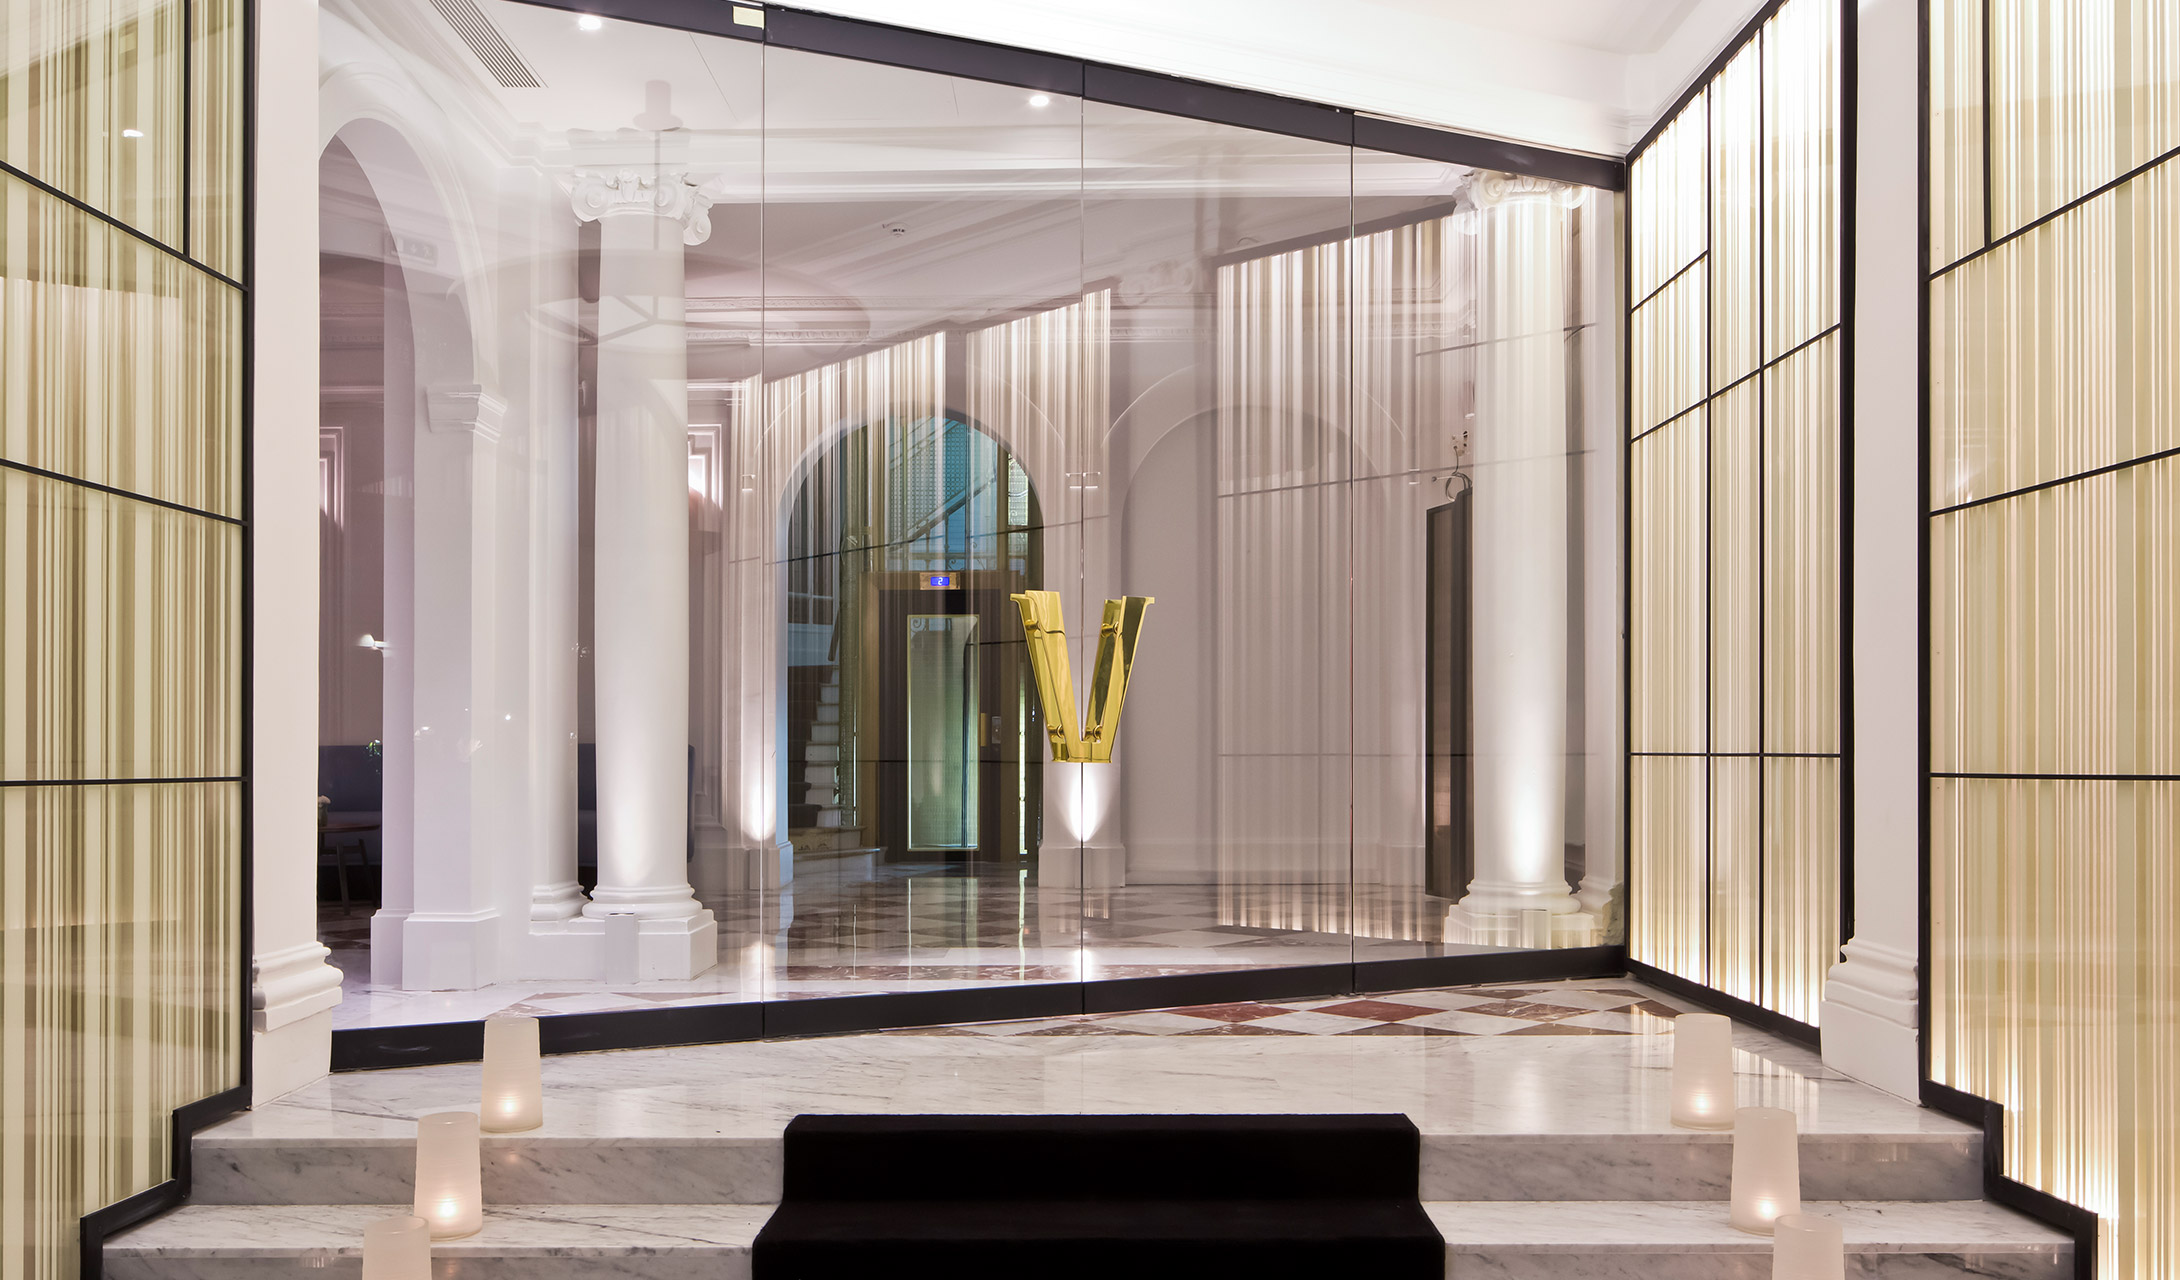 Hotel vernet champs elys es paris france design hotels for Design hotels of france